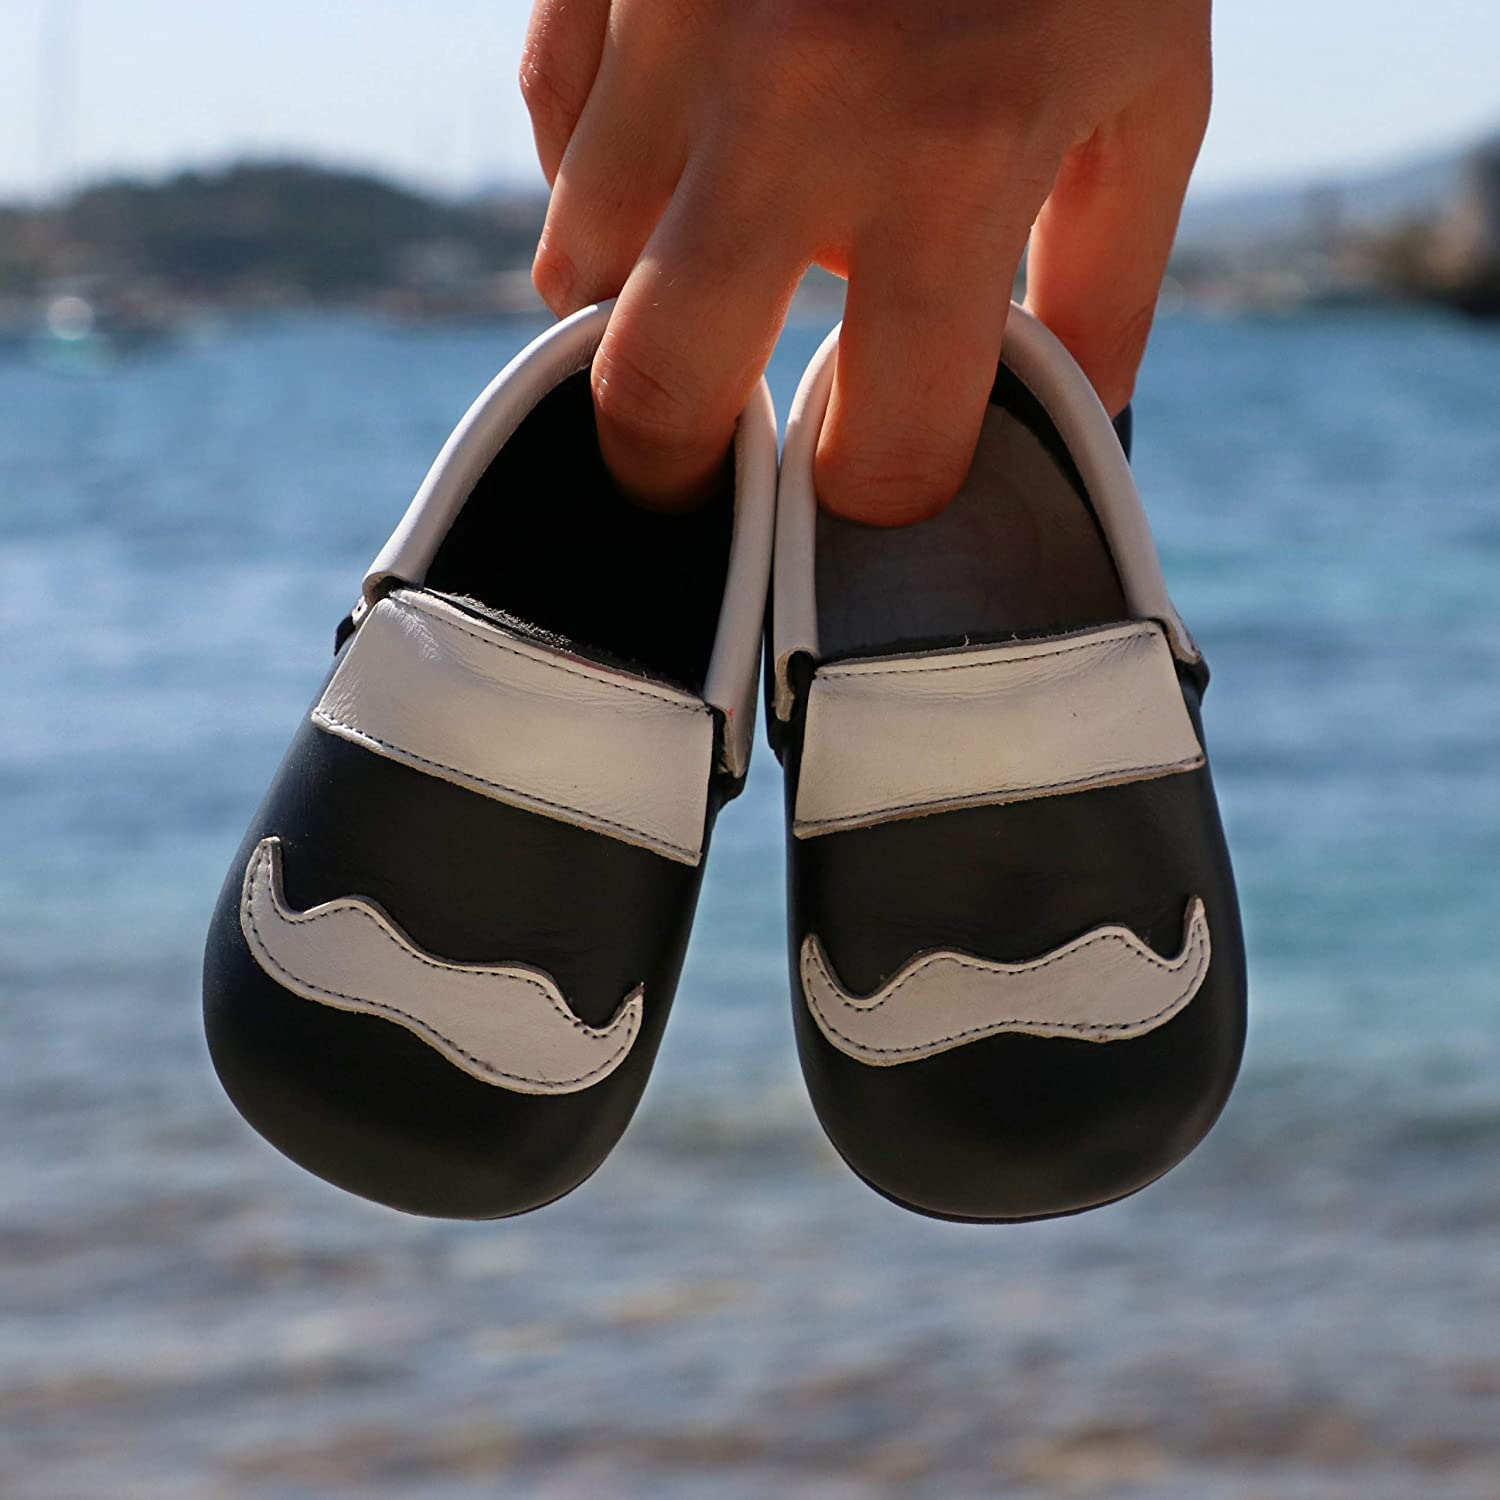 for Baby Boys Girls Toddlers Ella Bonna Baby Cowhide Full Grain Leather Bowtie Shoes Cowhide Sole Handmade Moccasins Flexible Loafers